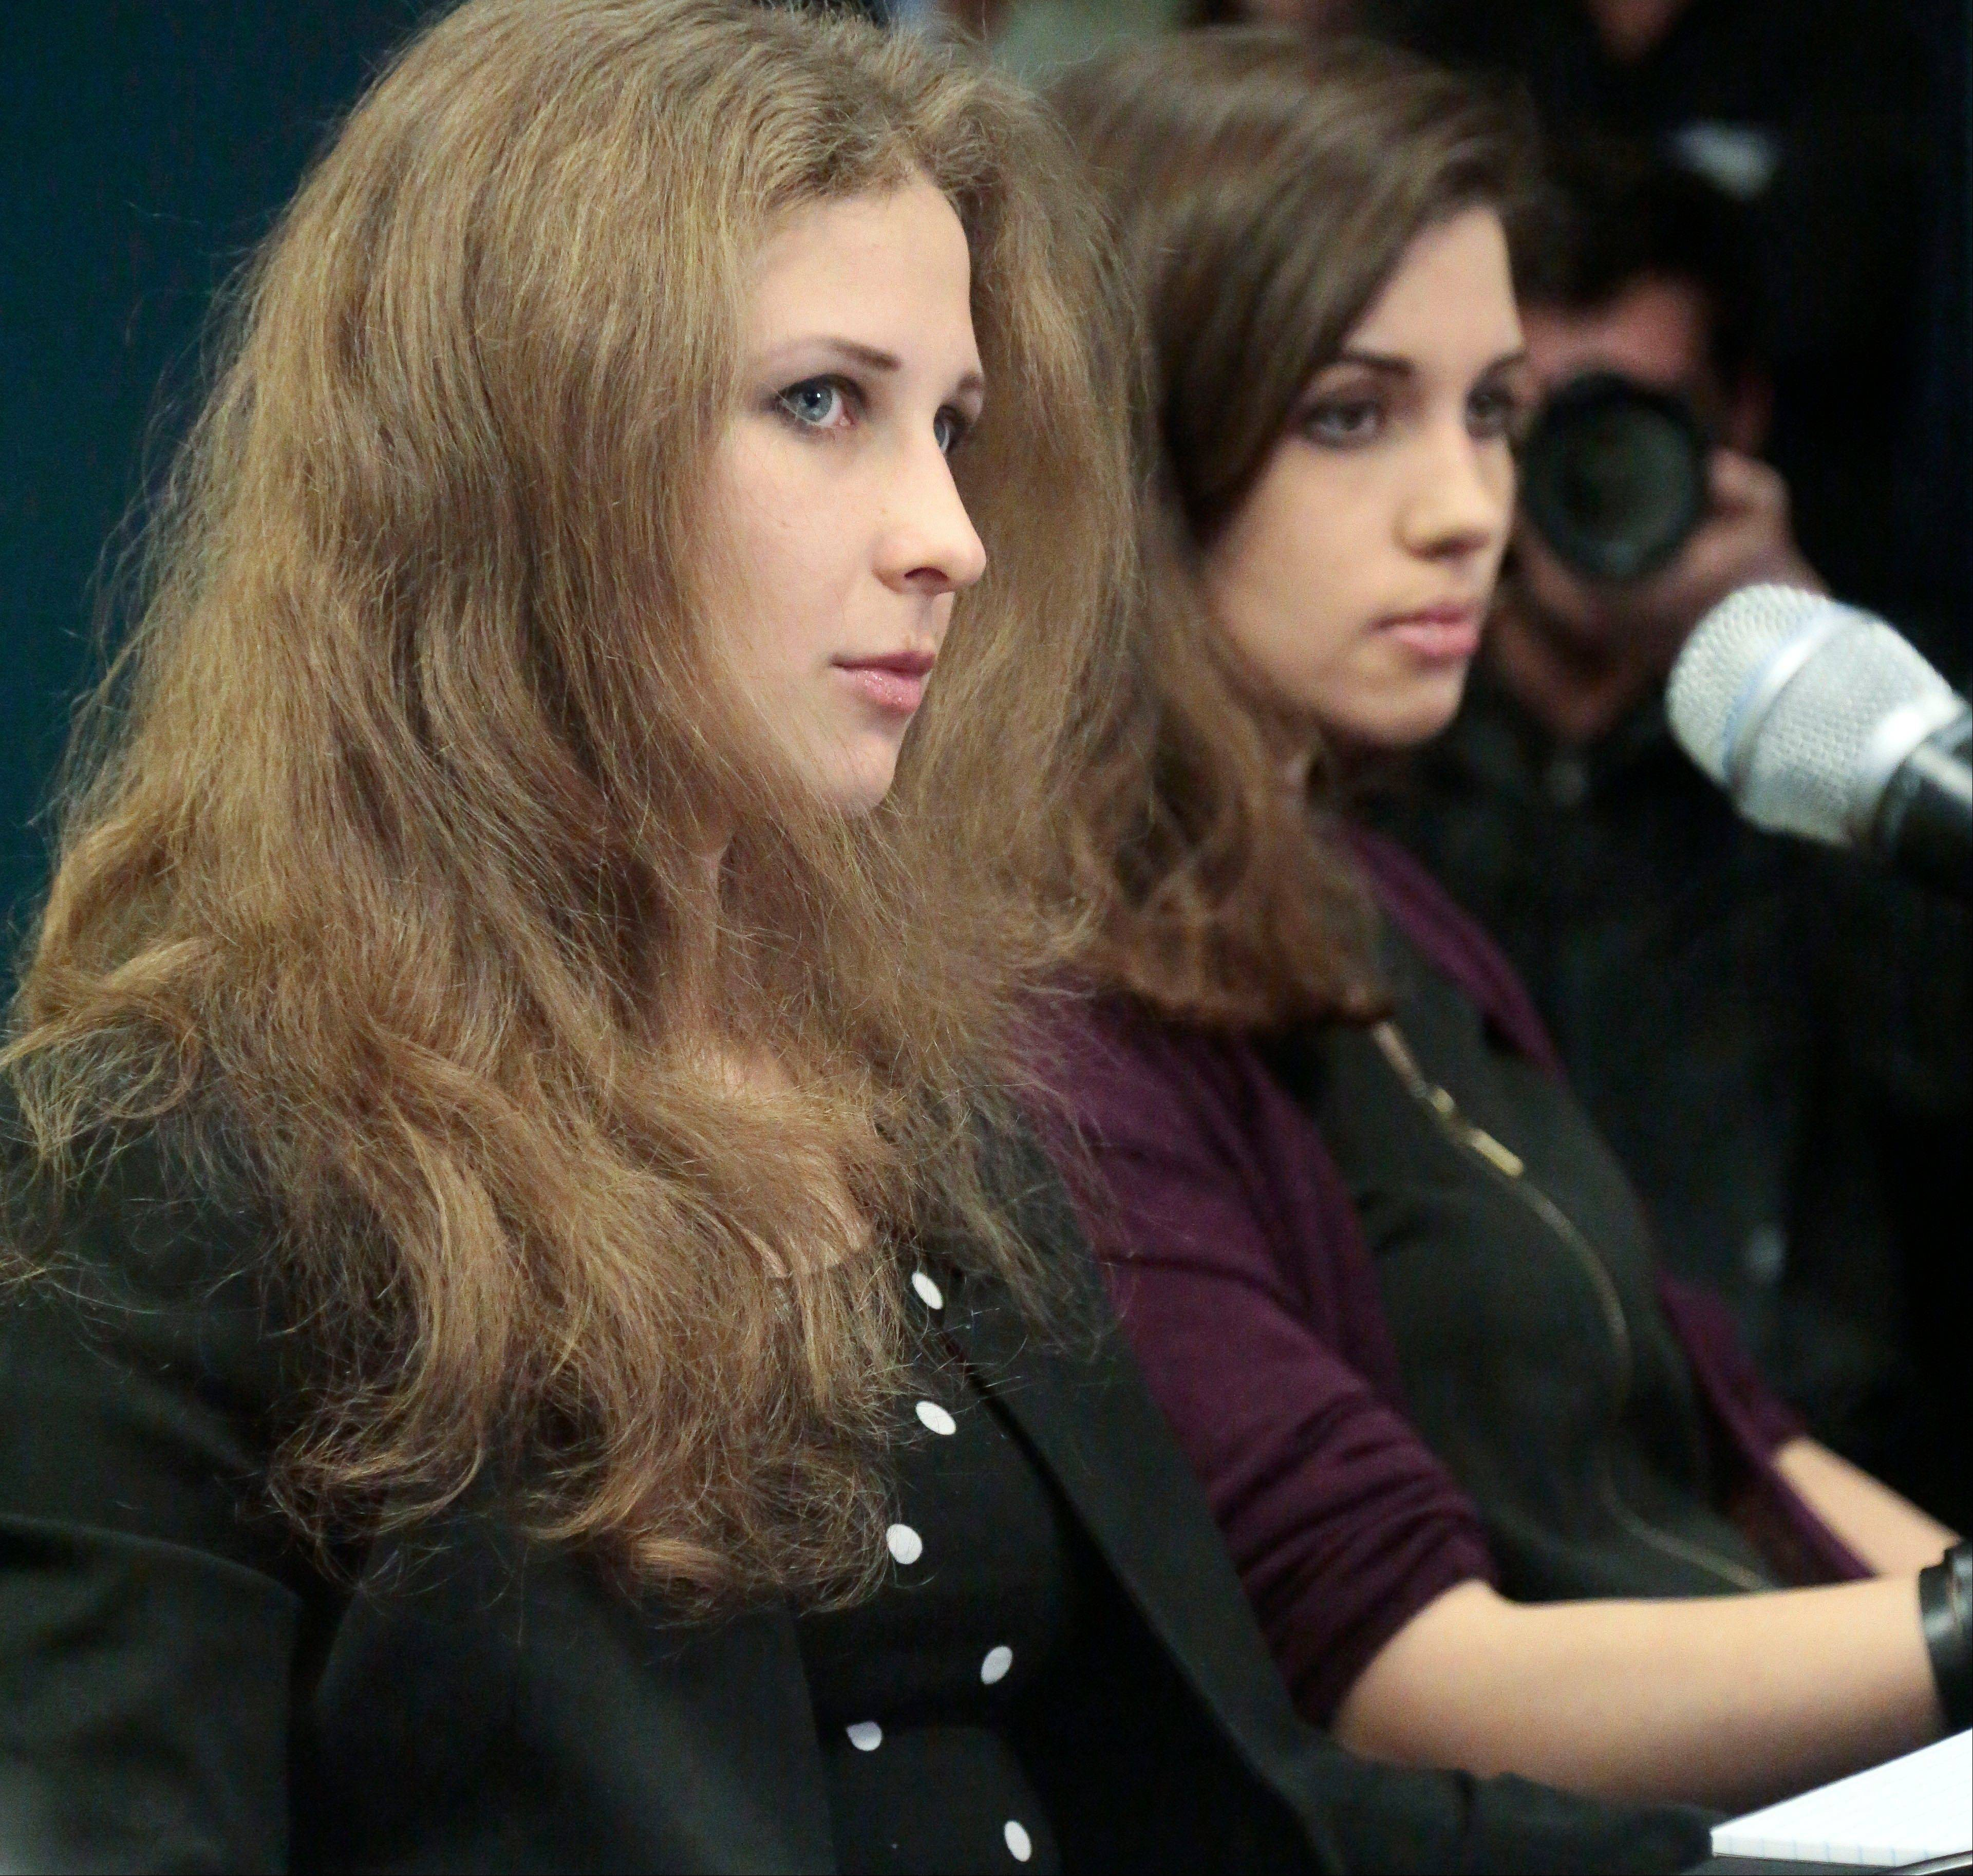 Nadezhda �Nadya� Tolokonnikova and Maria �Masha� Alyokhina, of the punk band Pussy Riot, hold a news conference Tuesday at Amnesty International�s New York headquarters.